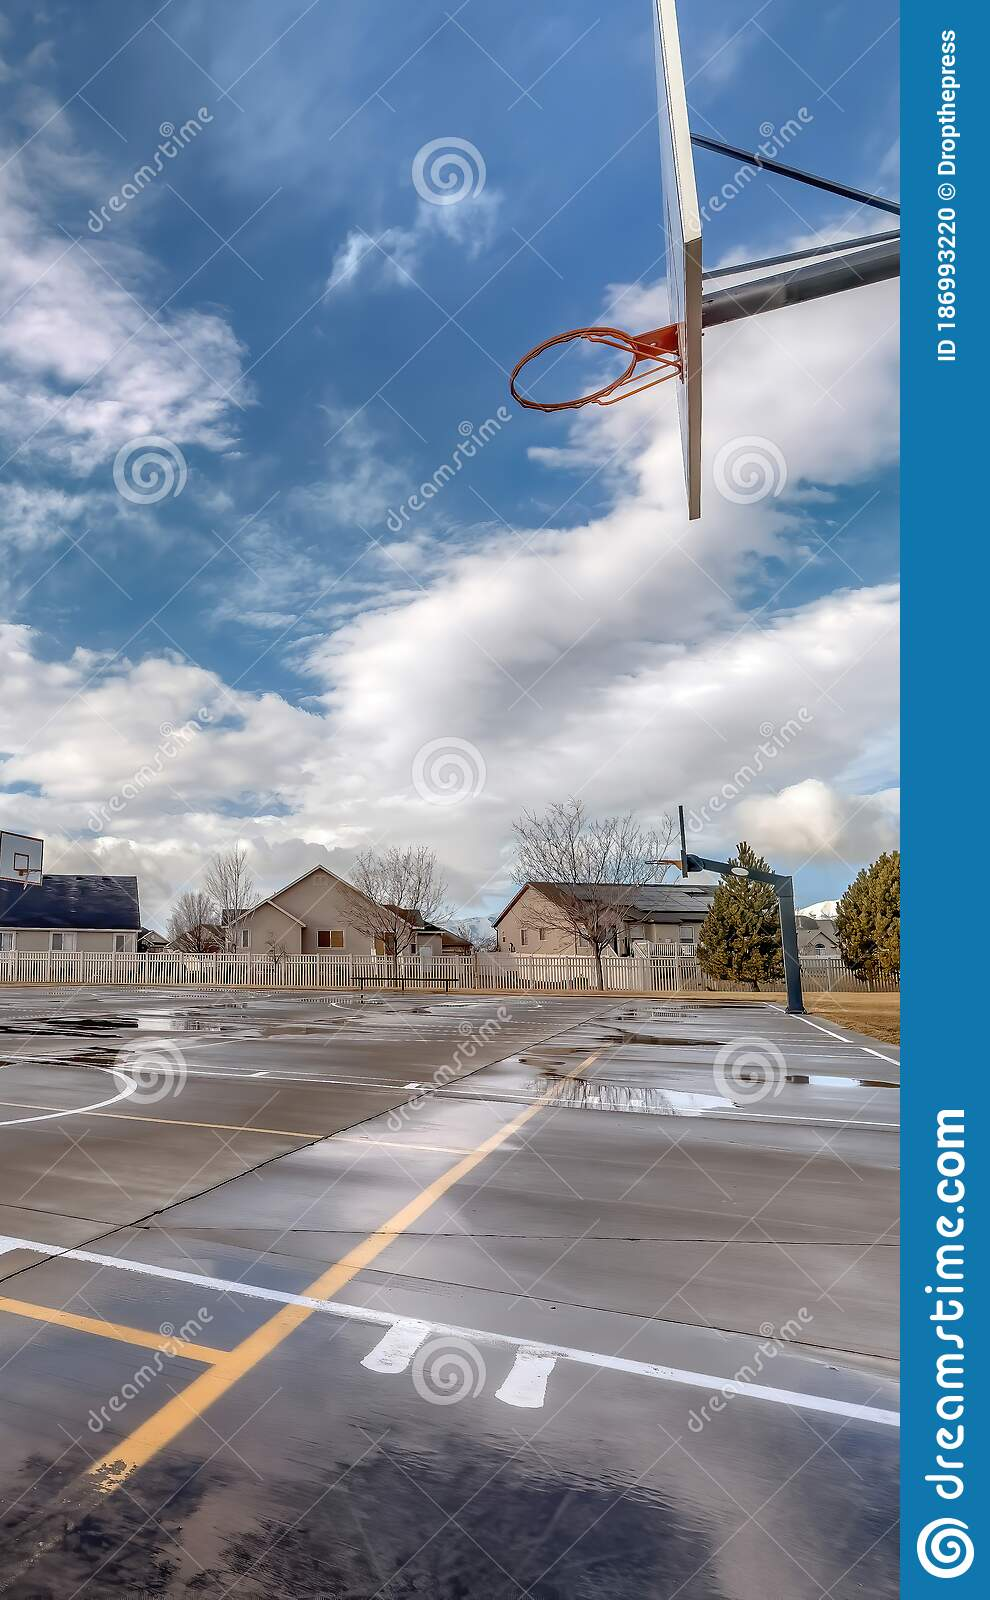 Vertical Basketball Courts On Neighborhood Park With Houses And Playground In Background Stock Photo Image Of Grassy Sports 186993220